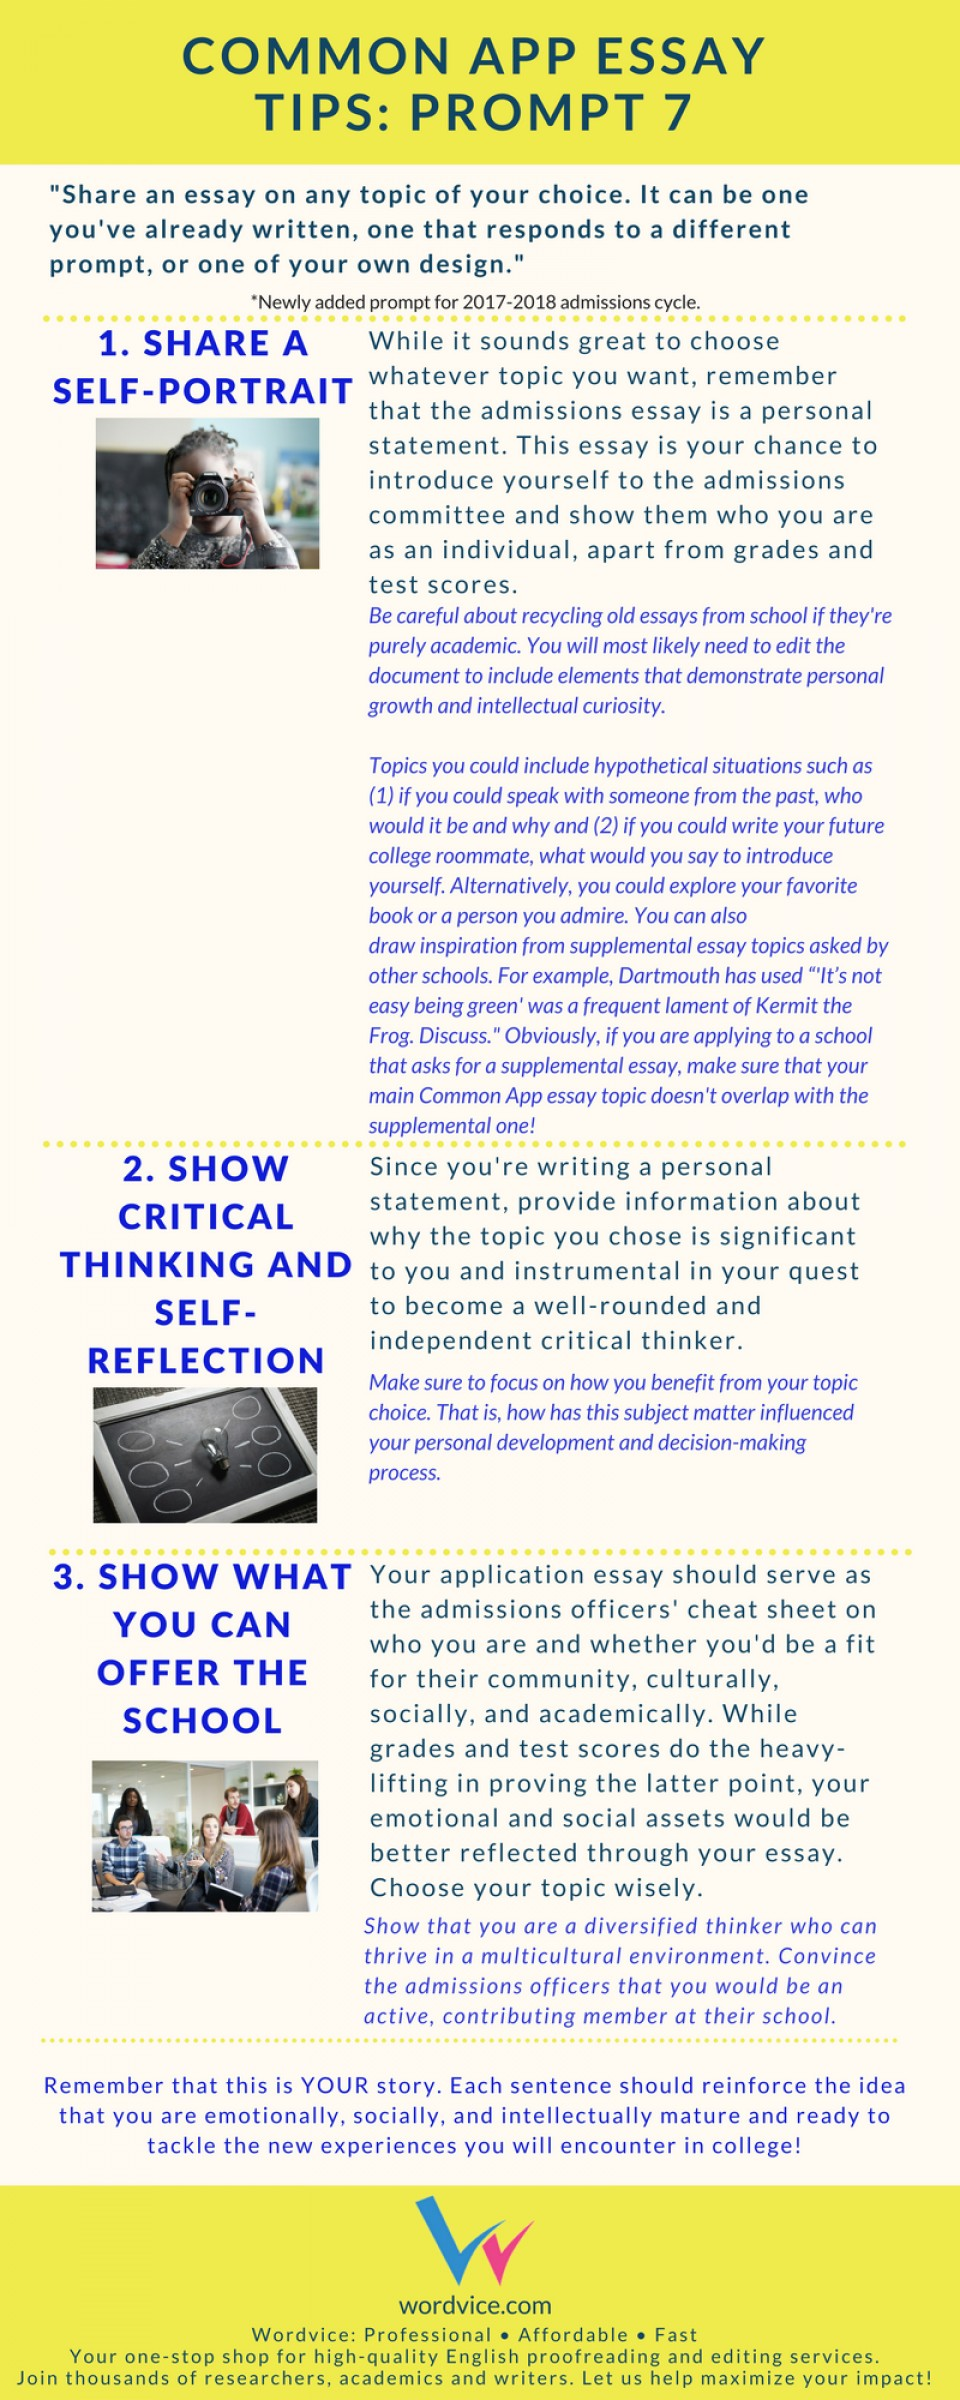 007 Common App Brainstormprompt Essay Example Formidable Prompts Examples Prompt 1 Transfer 2017 2015 960